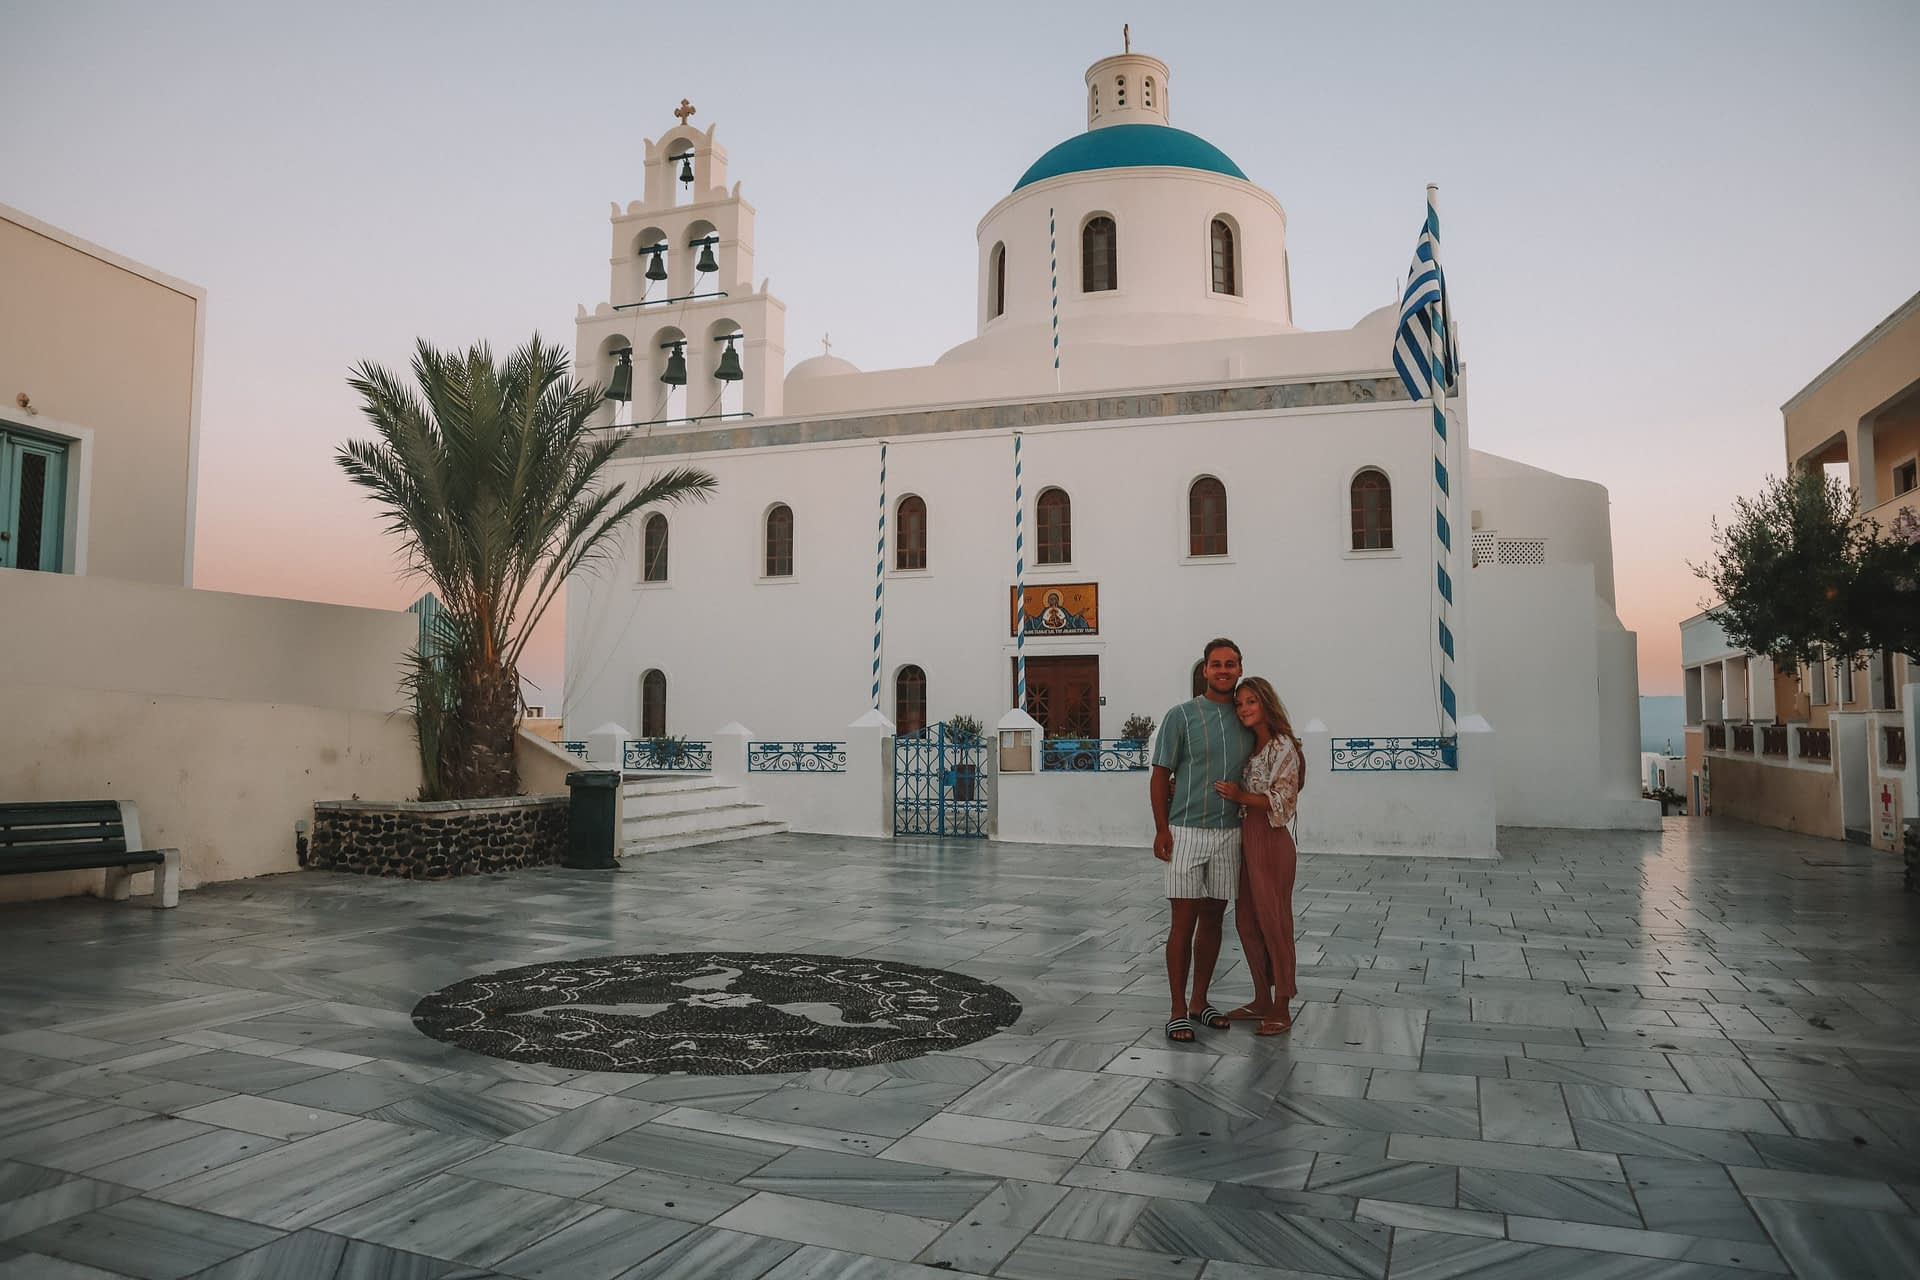 A couple stood in front of a blue domed building and bells during sunrise. Things to do in Santorini